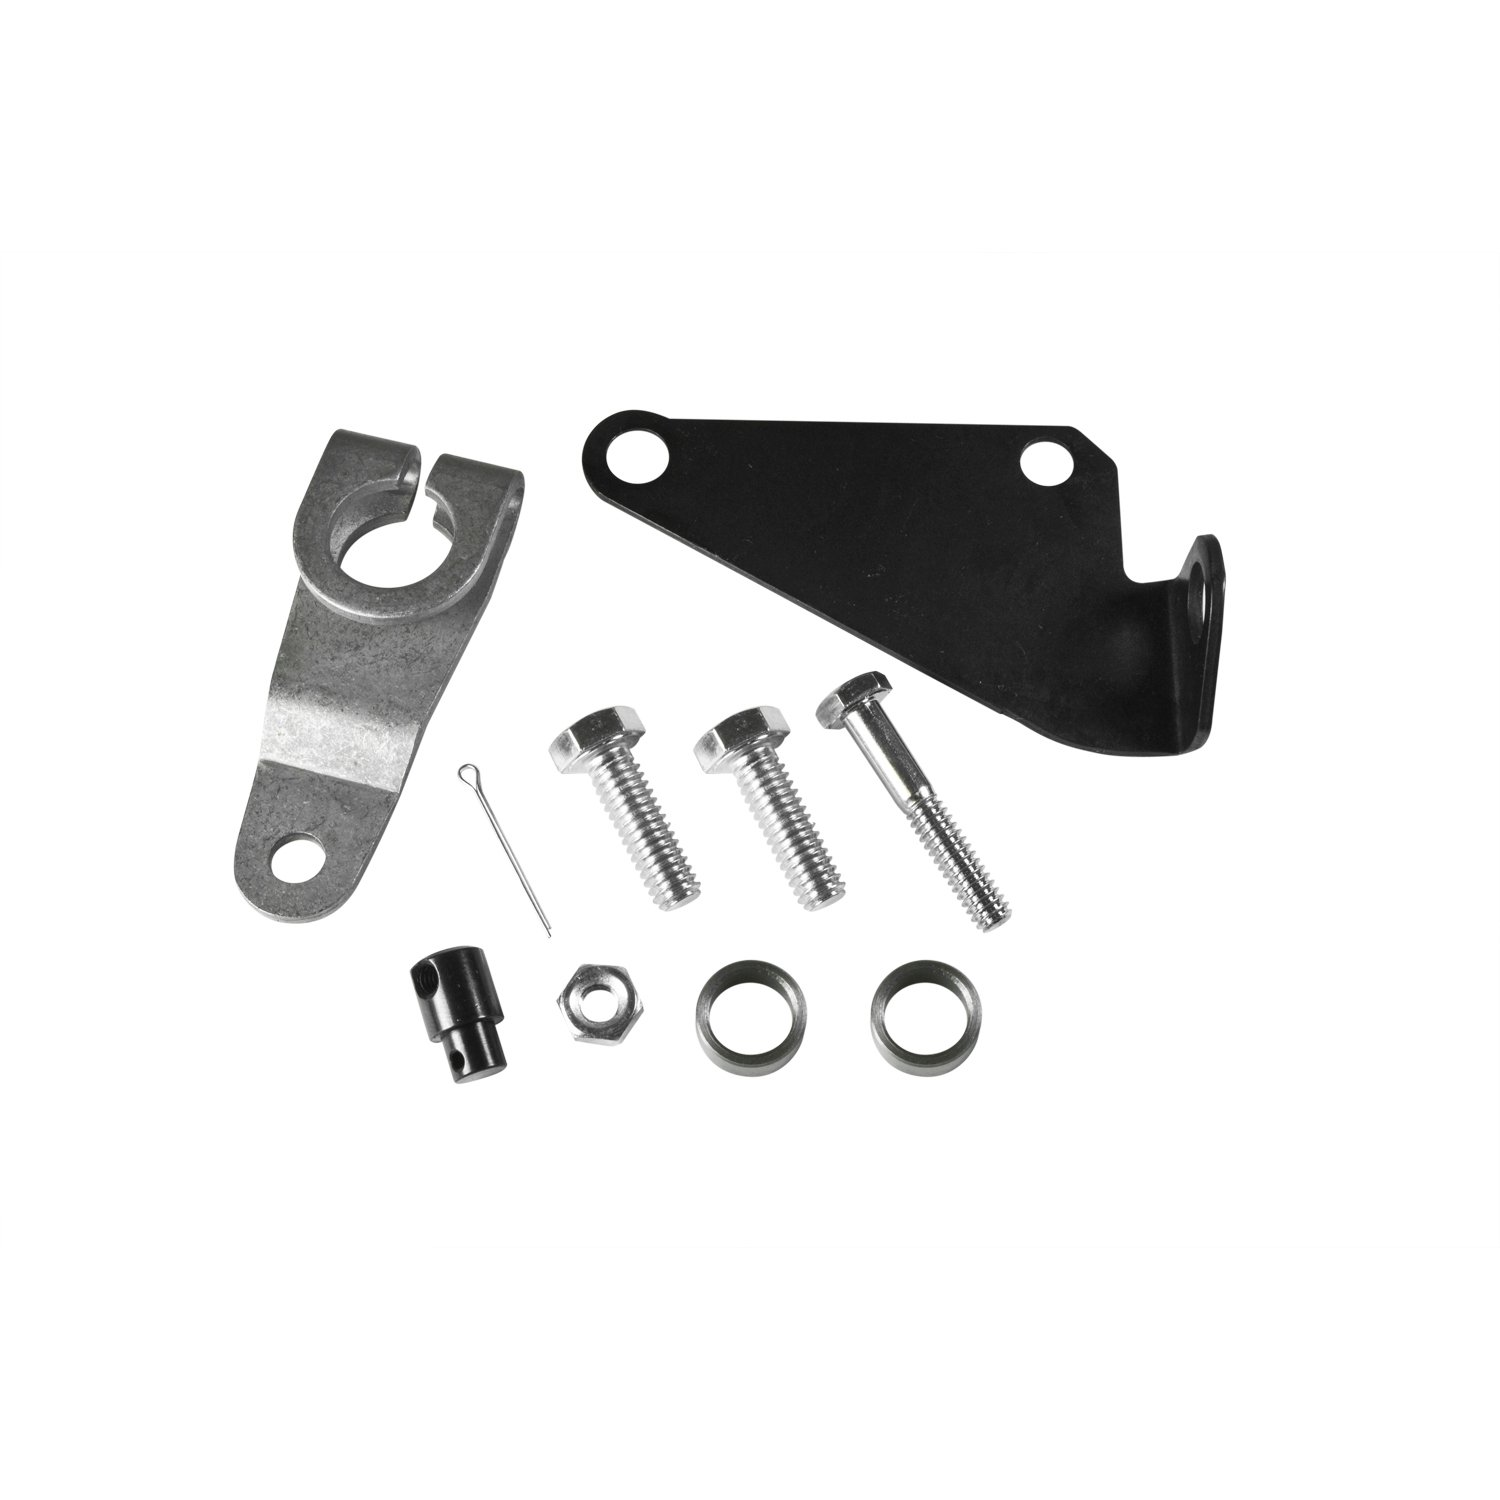 B&M Bracket and Lever Kit for Ford C6 Automatic Transmissions